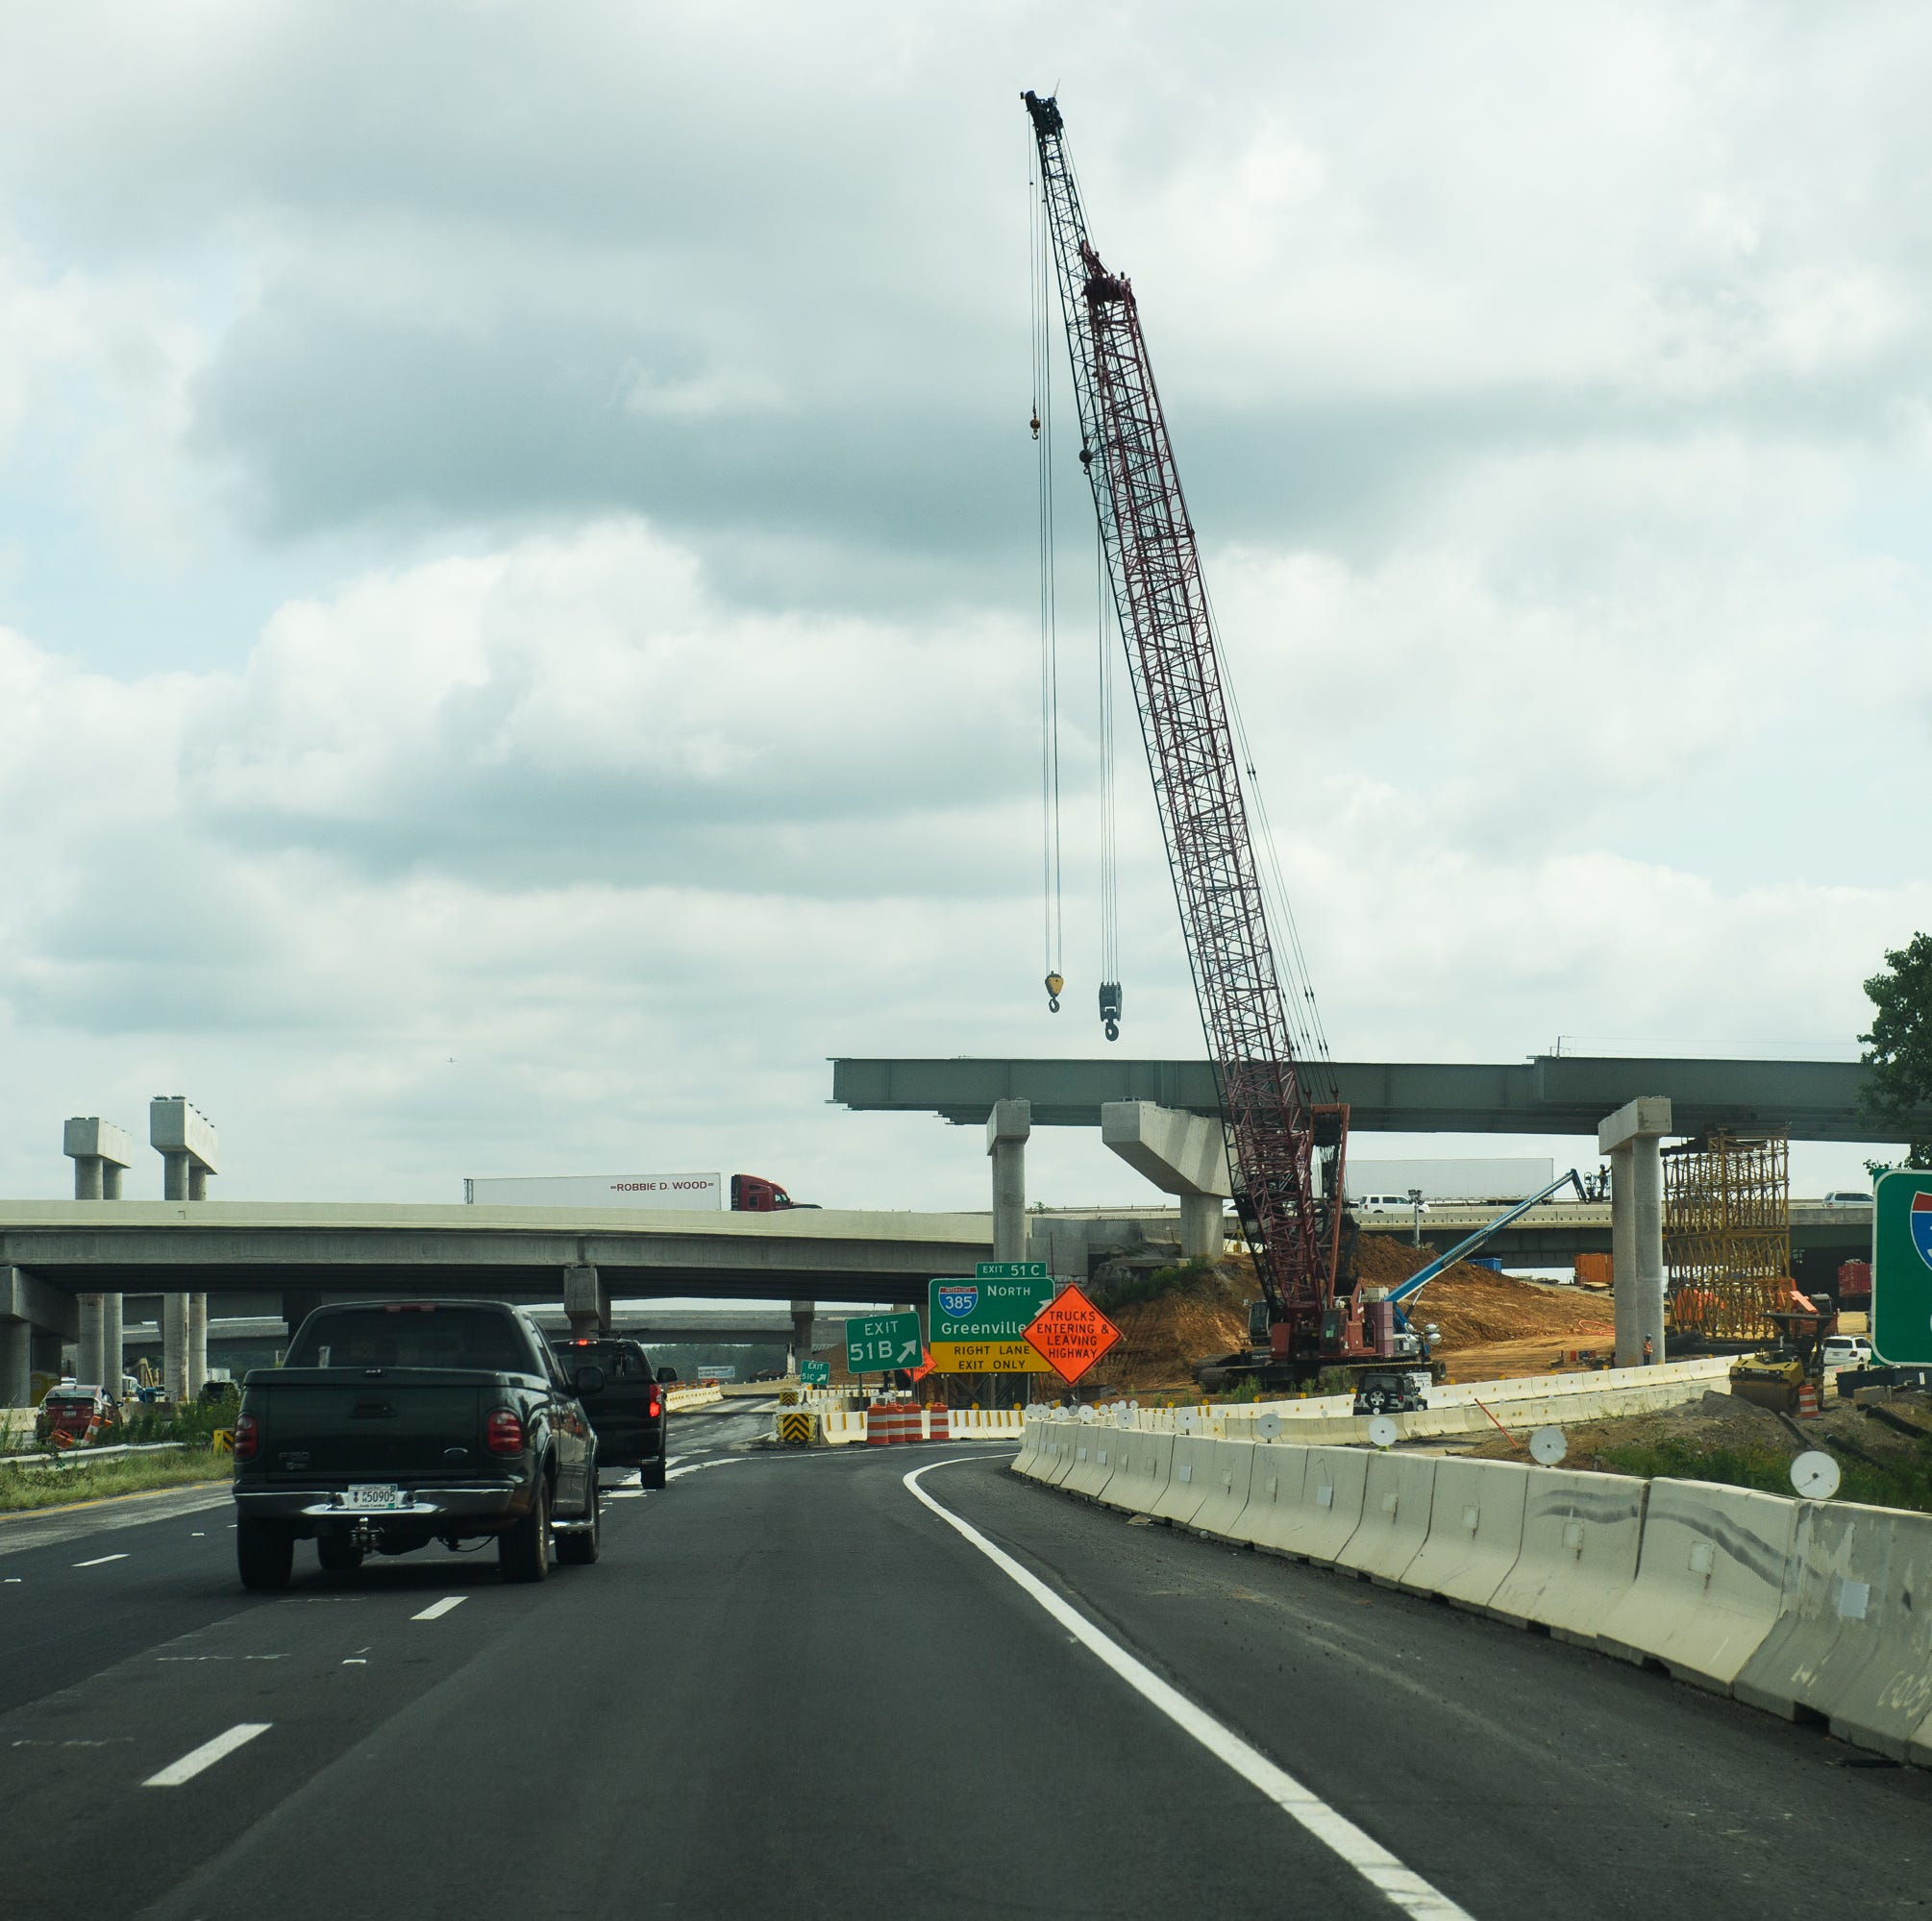 Your headaches at the 85-385 interstate interchange are going to last longer and cost more